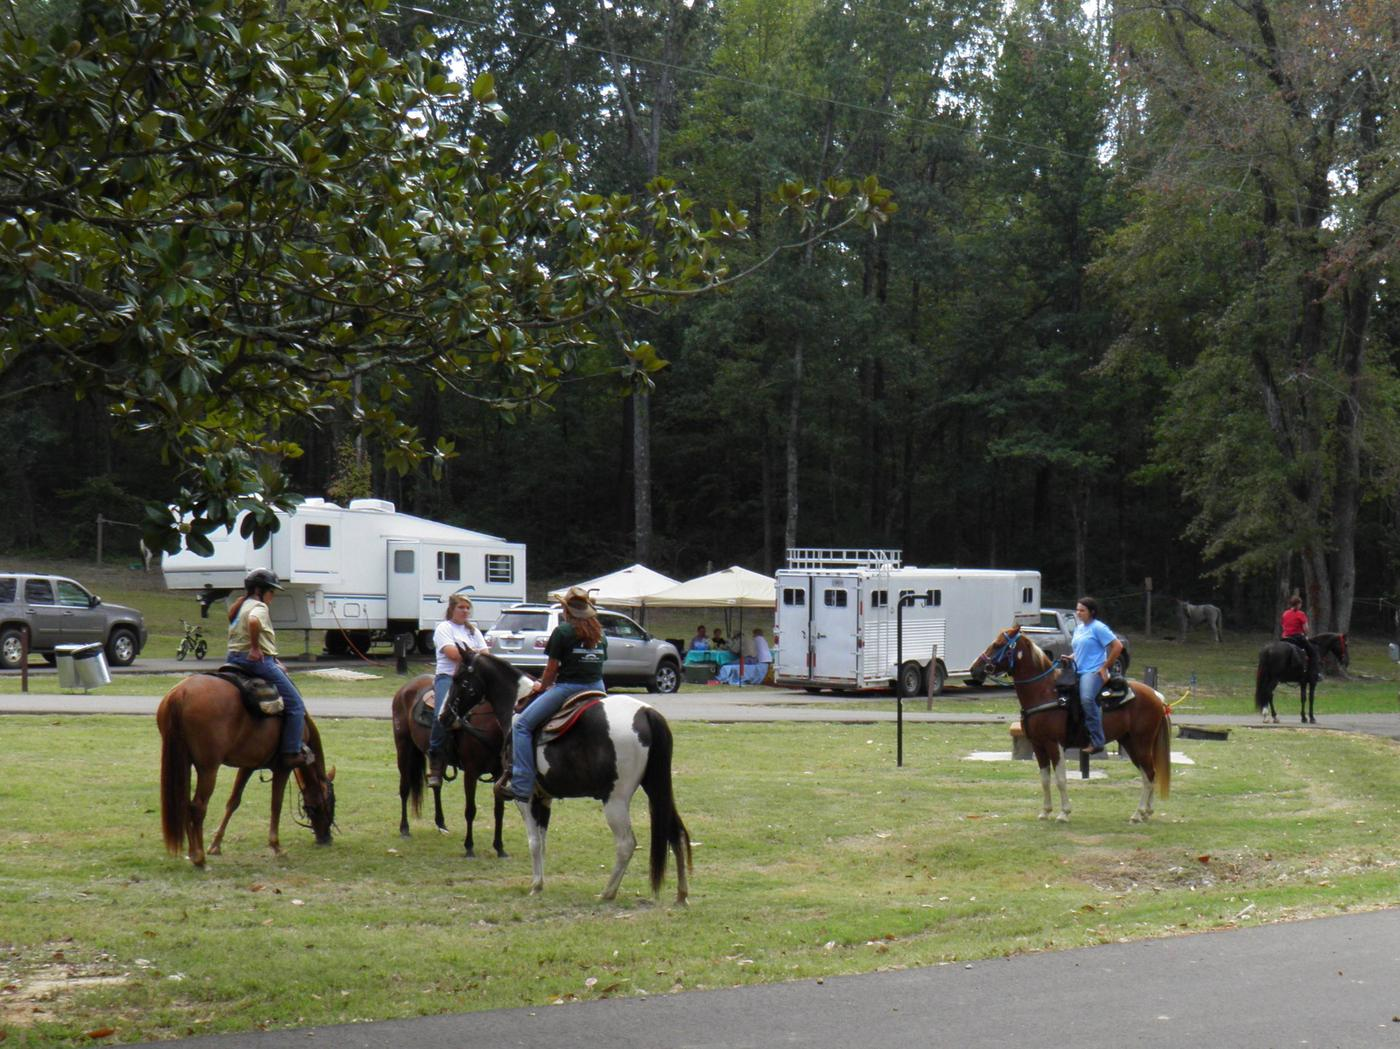 Equestrian Riders Enjoy Ford's Well CampgroundFord's Well Camping